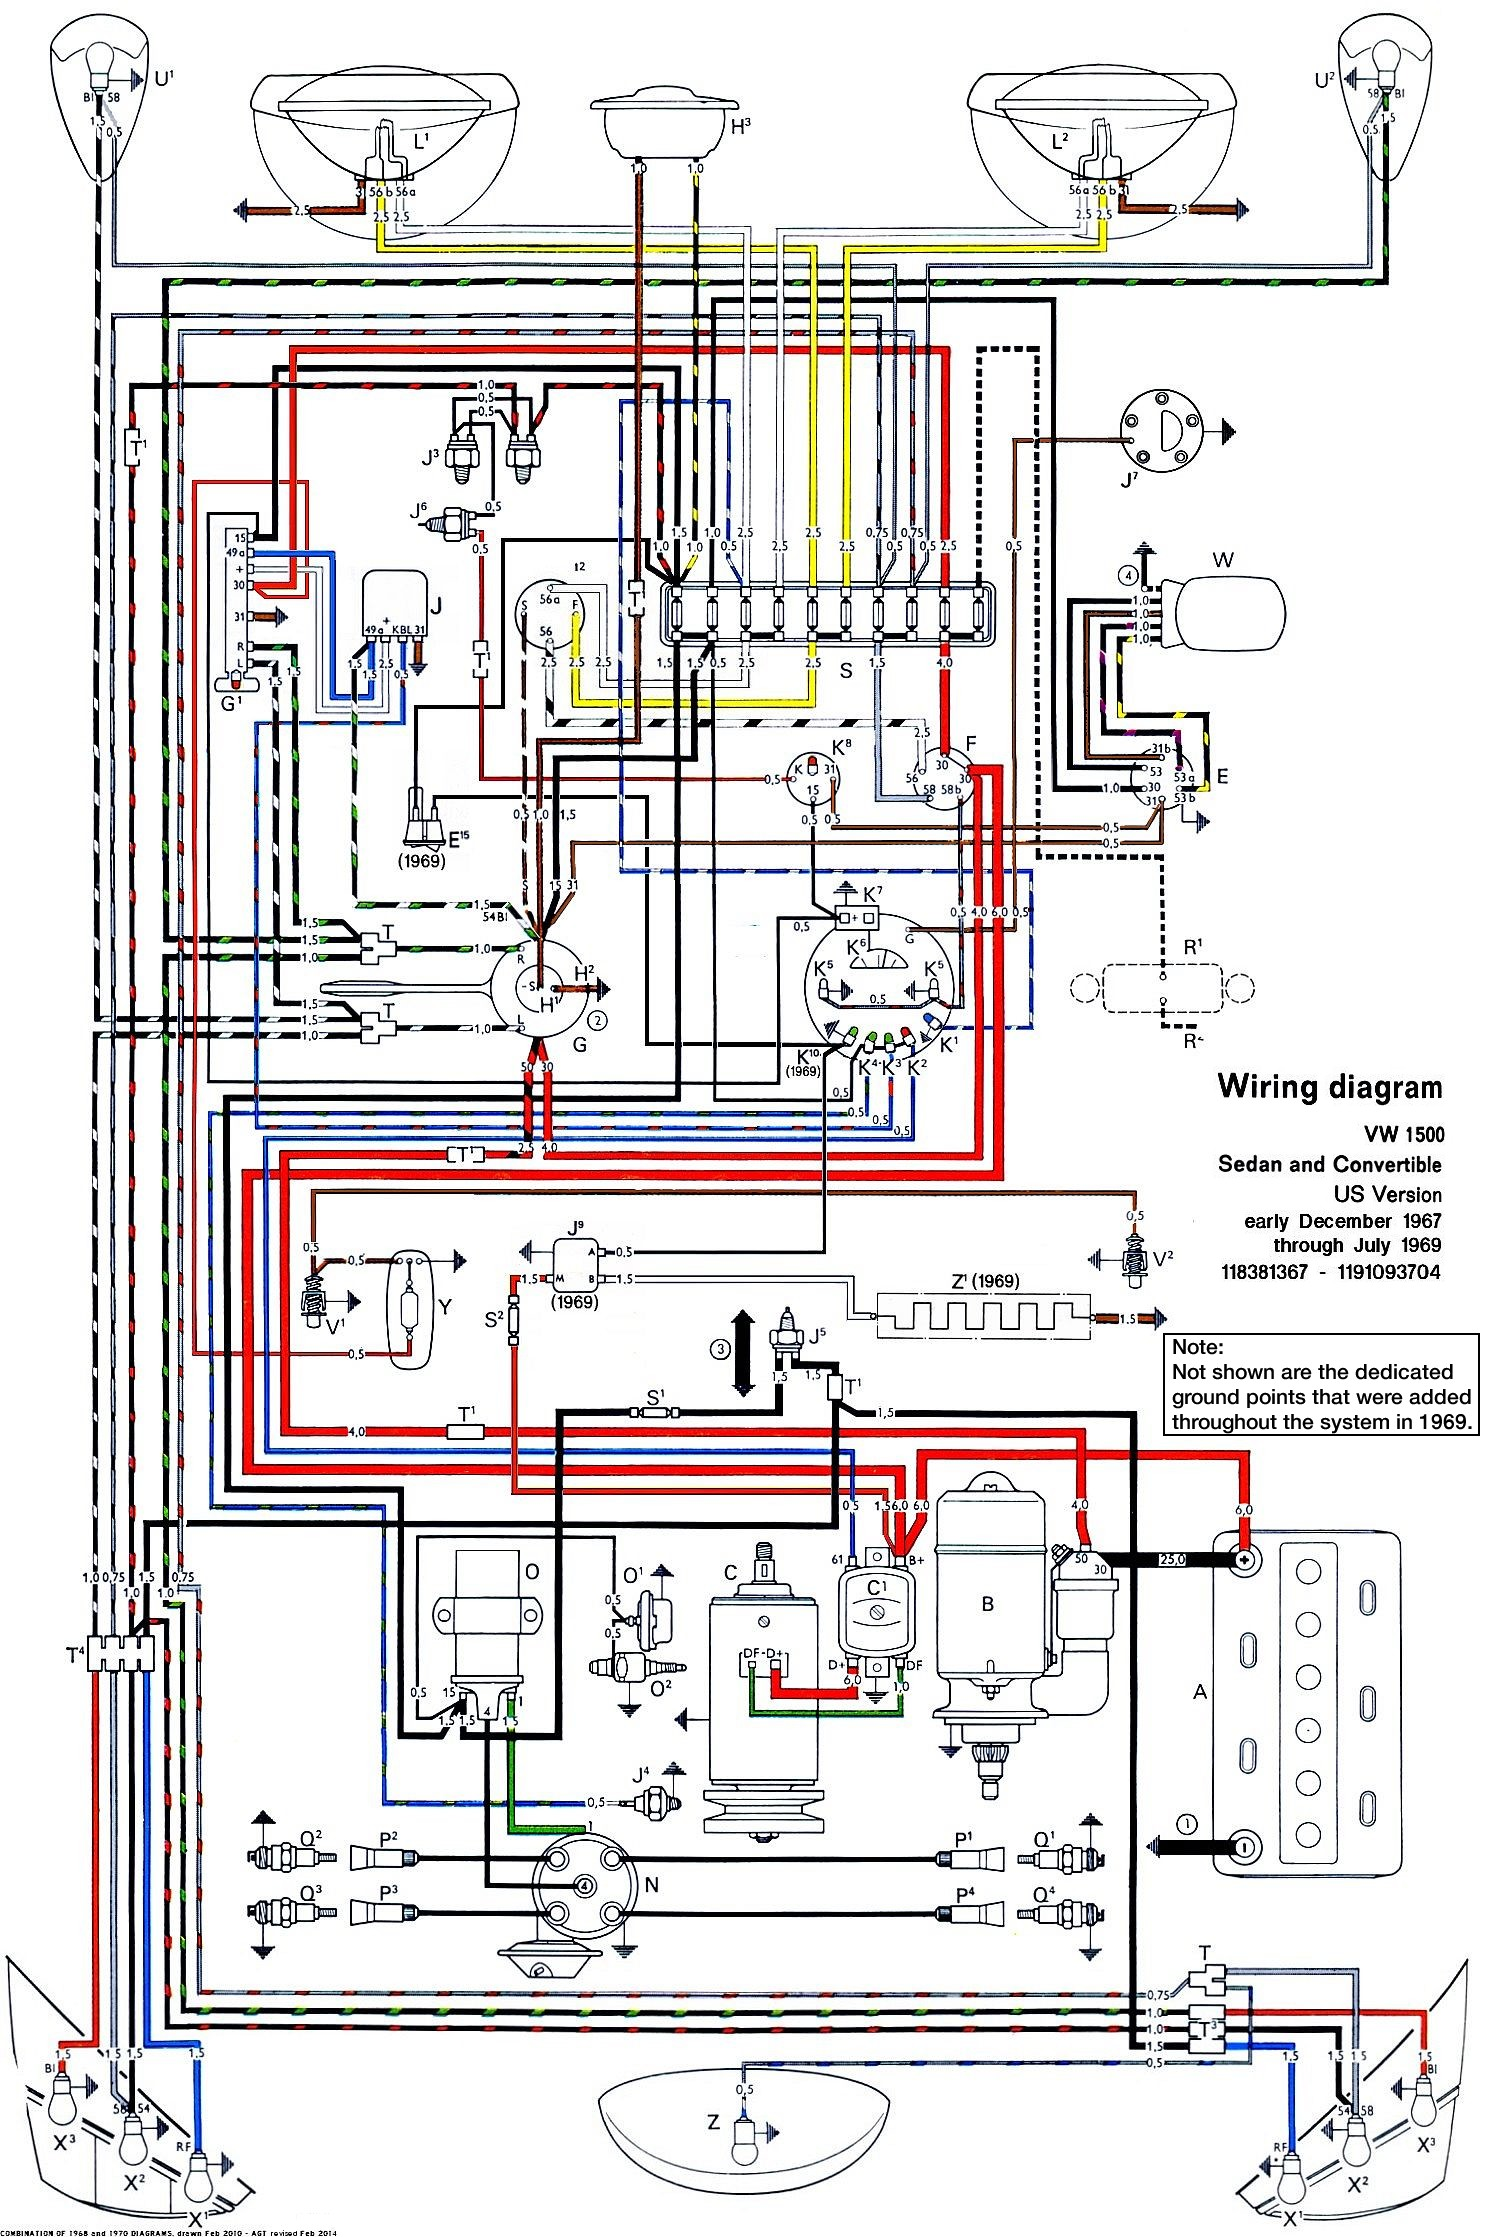 1971 Vw Super Beetle Ignition Wiring Diagram furthermore 71 Beetle Hazard Switch Wiring Diagram moreover Wiringt1 also Signals additionally Wiringt2. on 1967 volkswagen bus wiring schematic